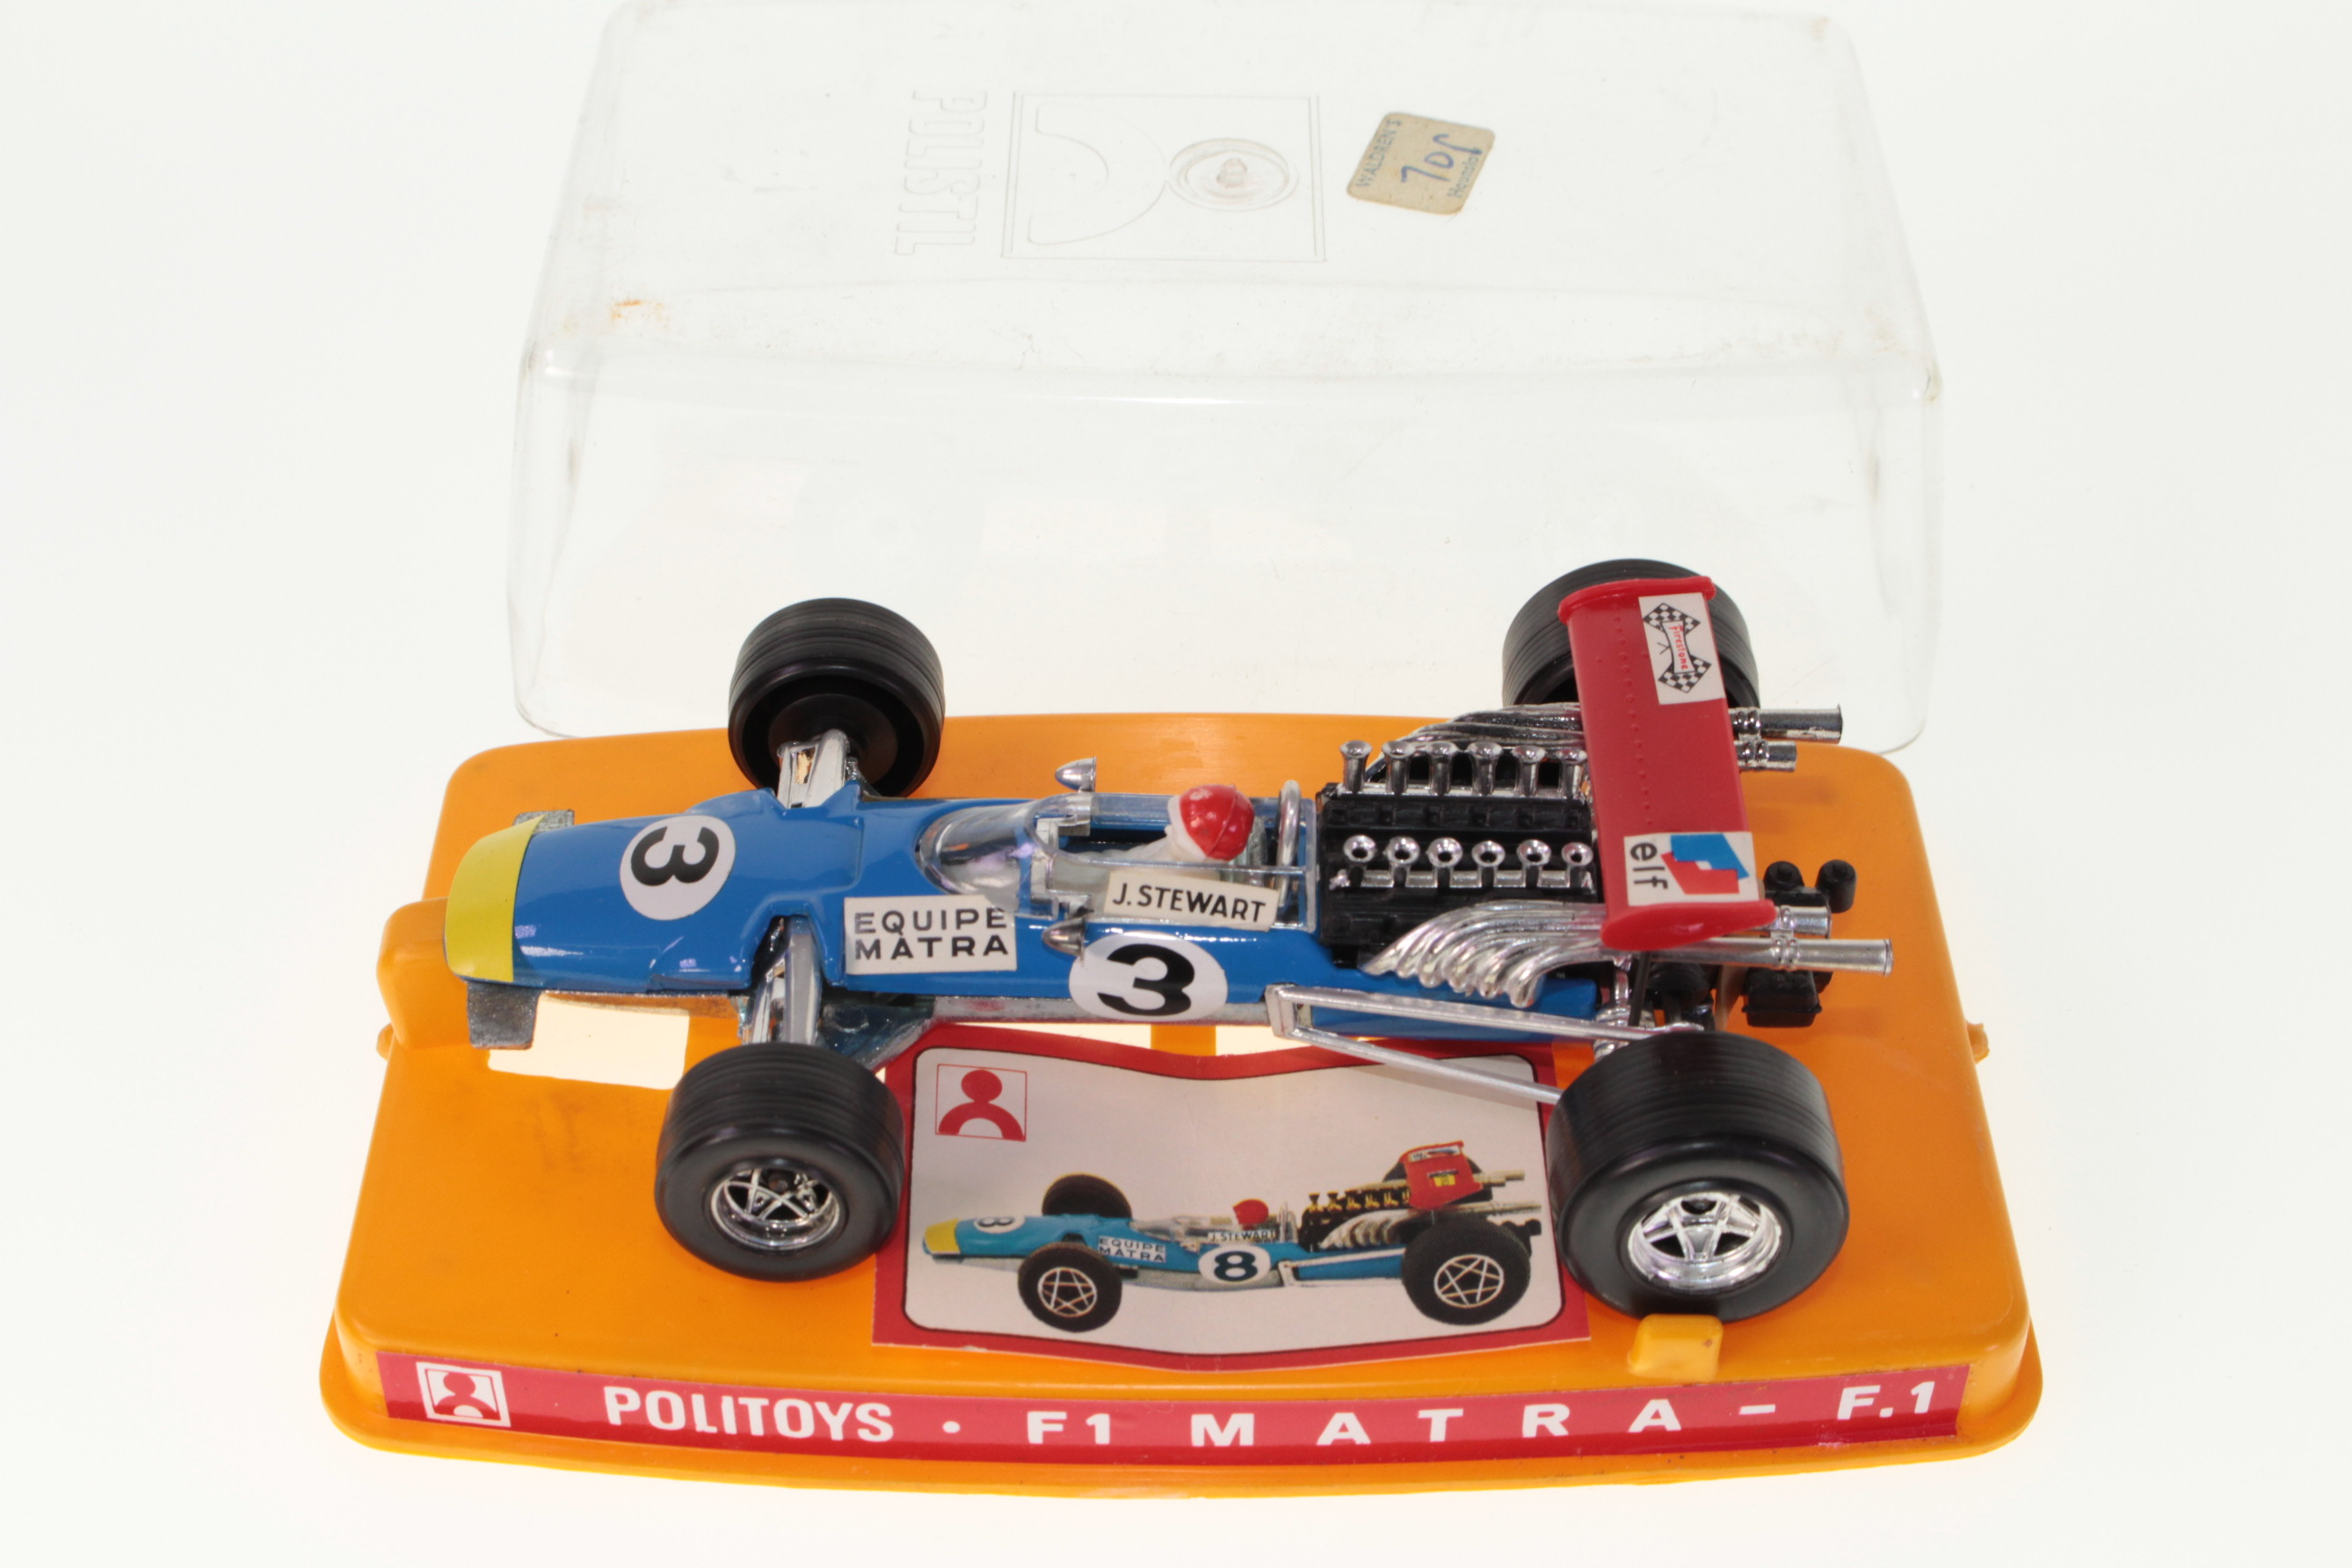 Picture Gallery for Politoys F1 Matra F1